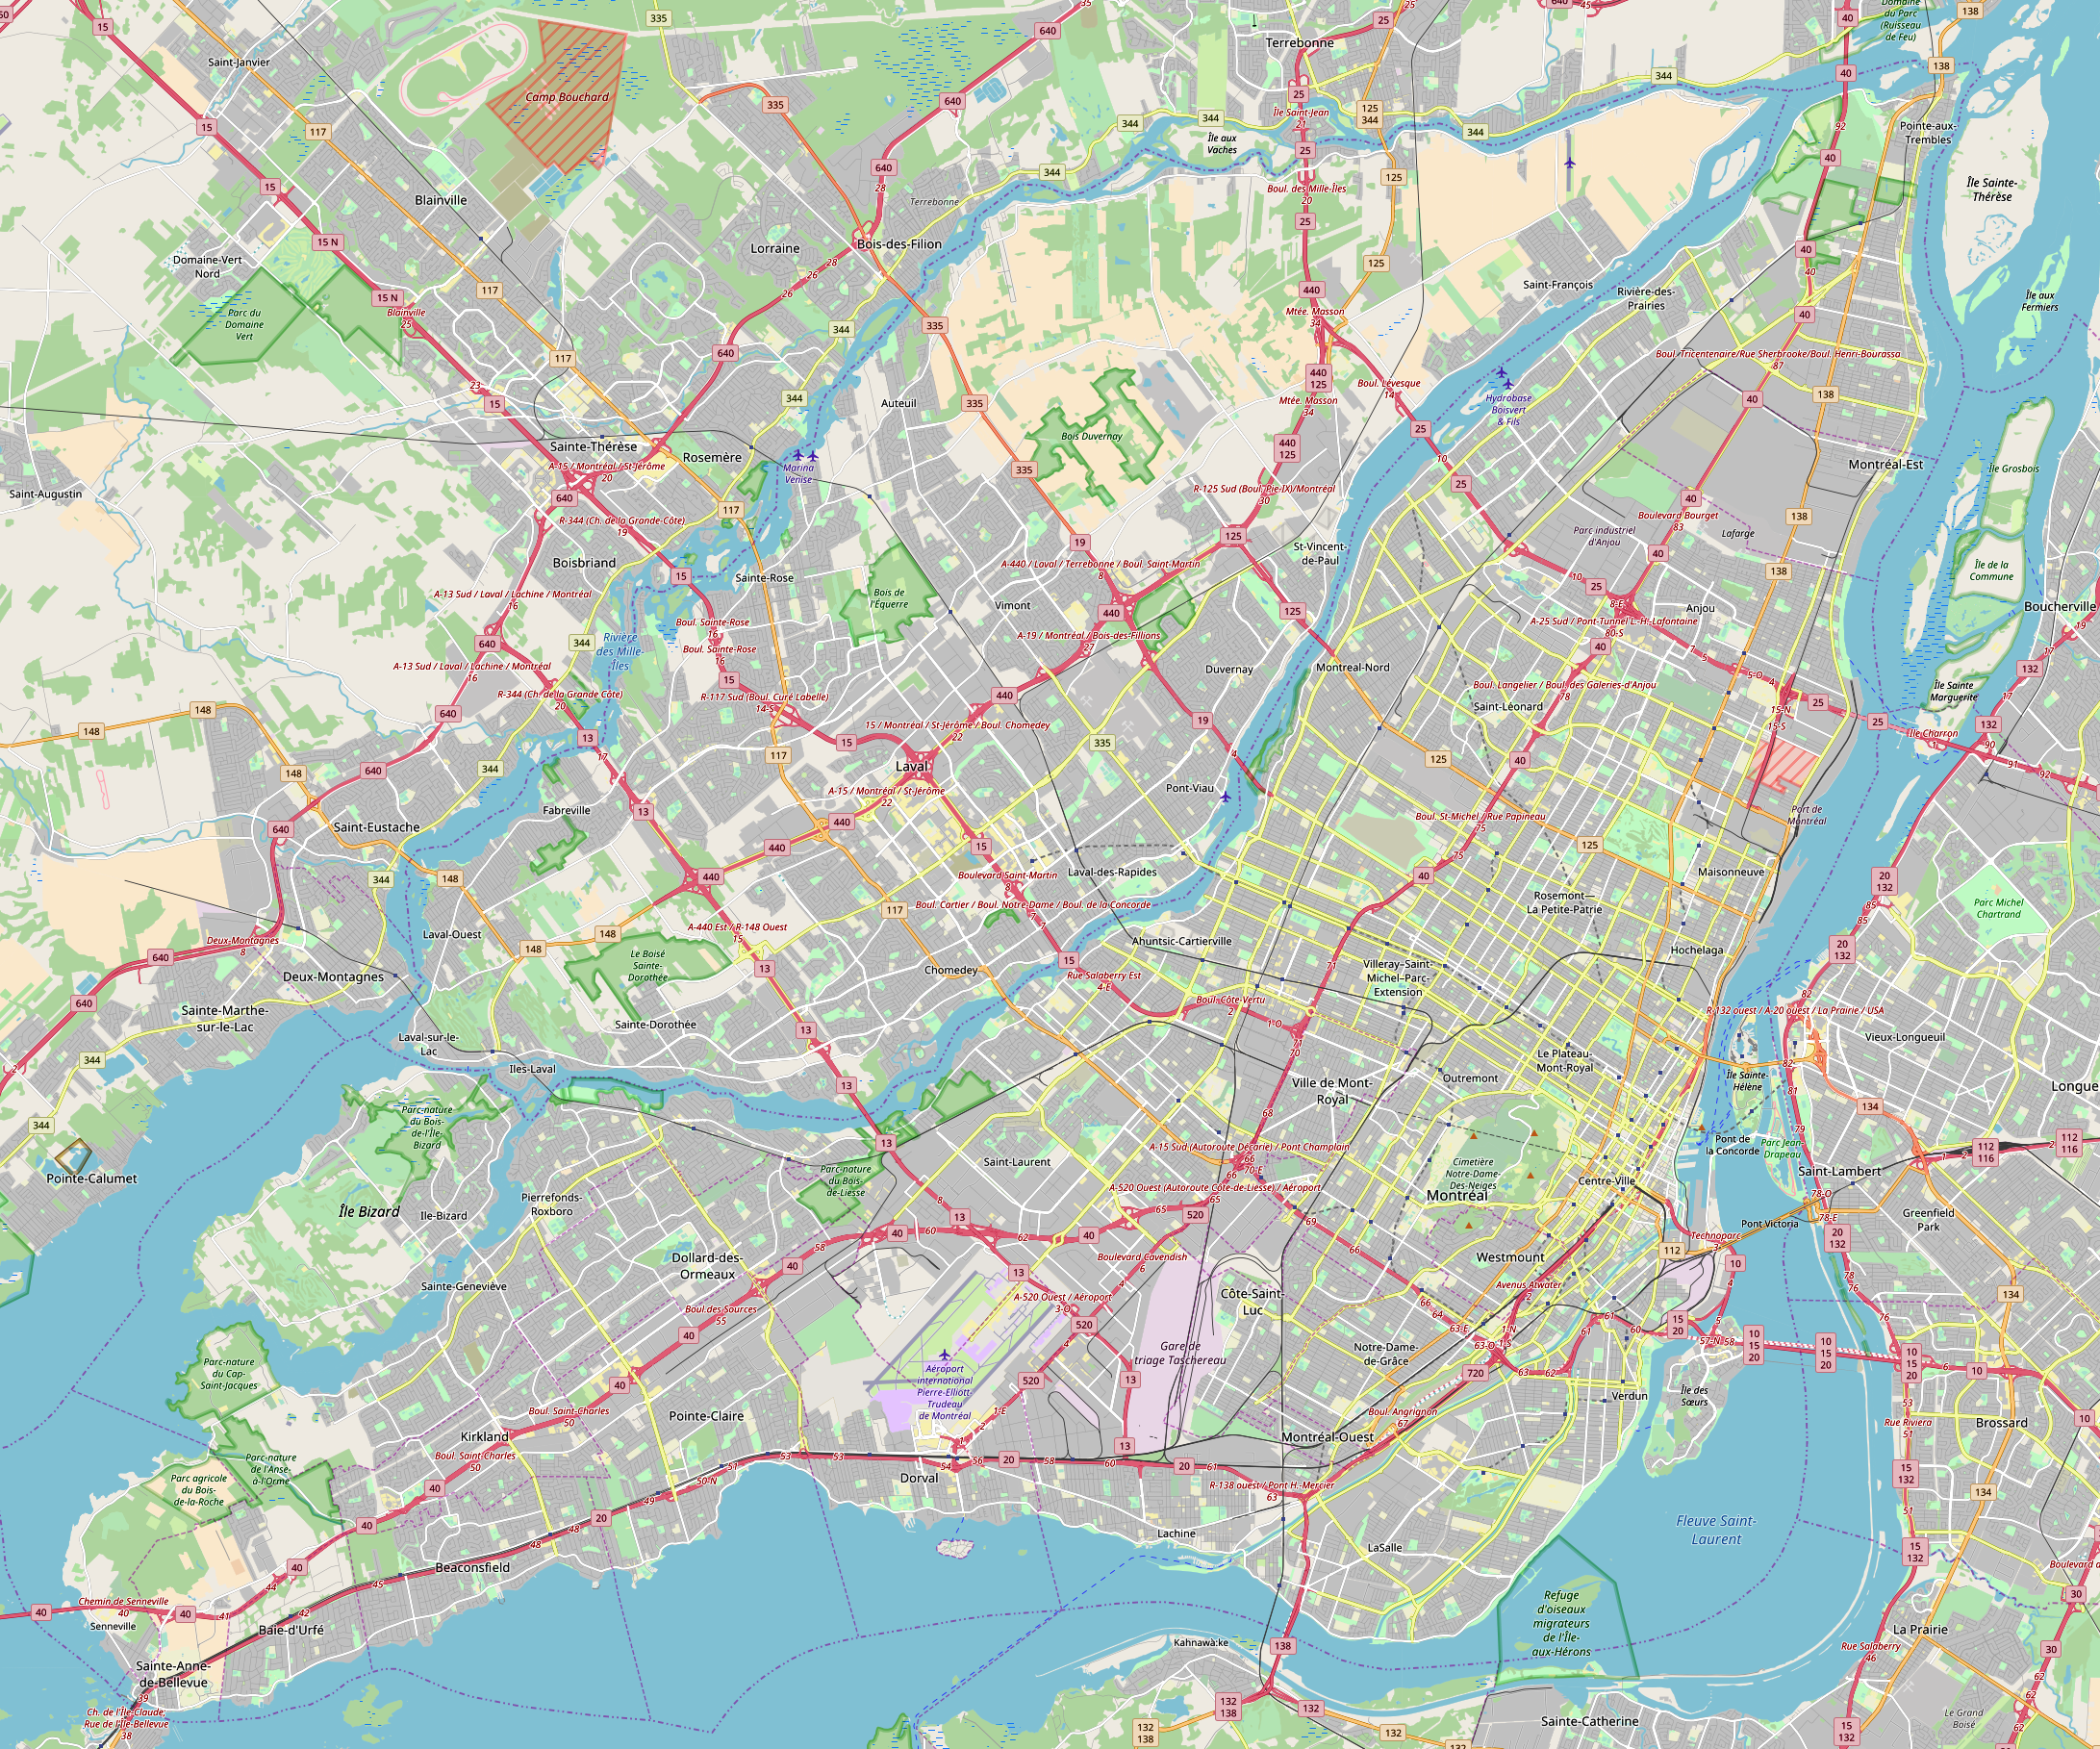 File:Map of Montreal.png - Wikimedia Commons